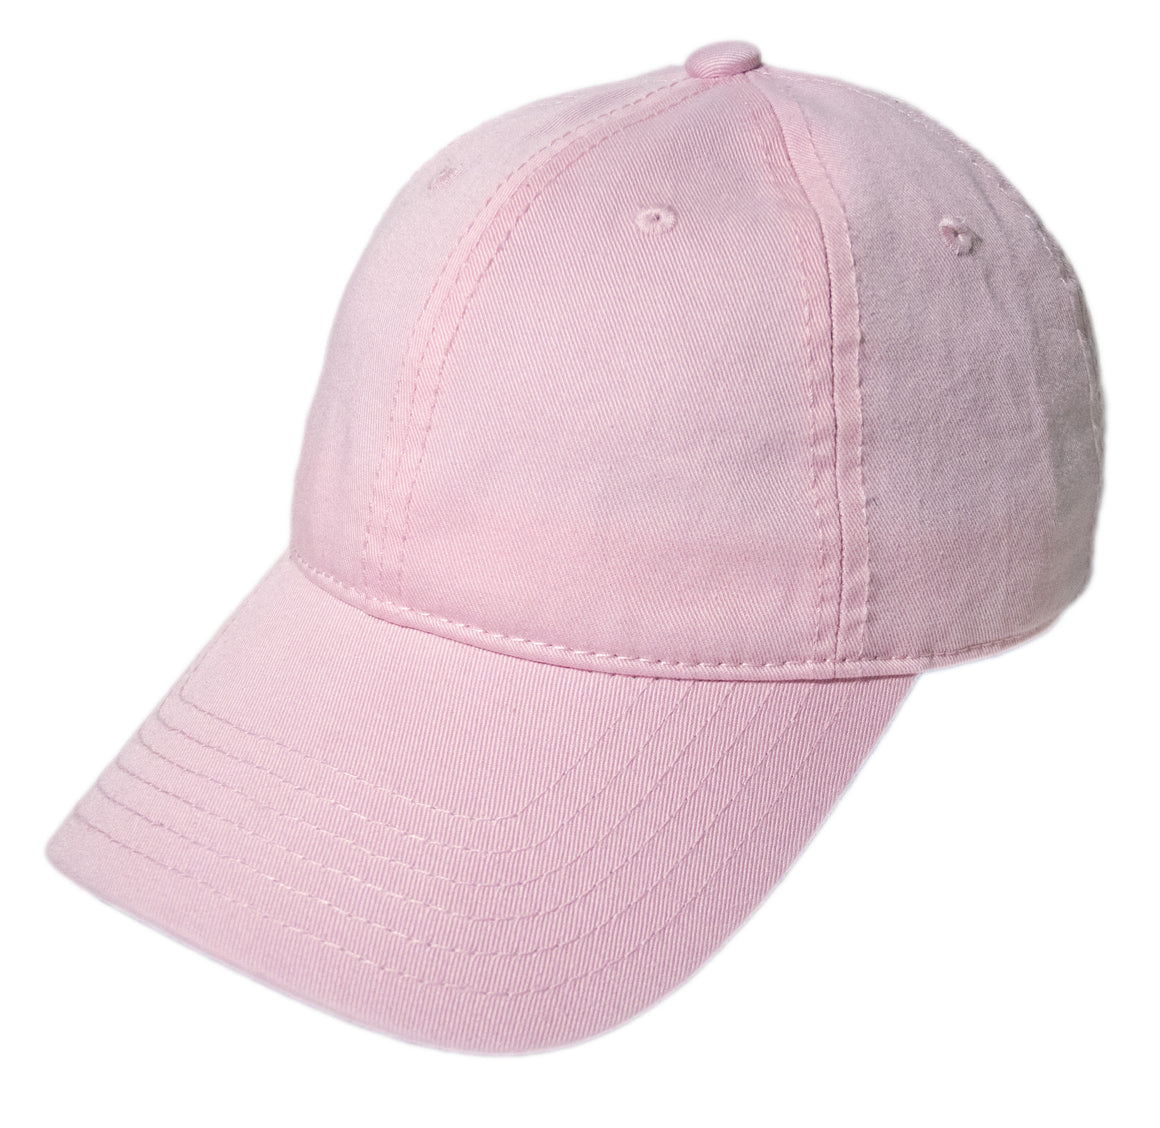 Blank Heavy Washed Cotton Cap - Light Pink